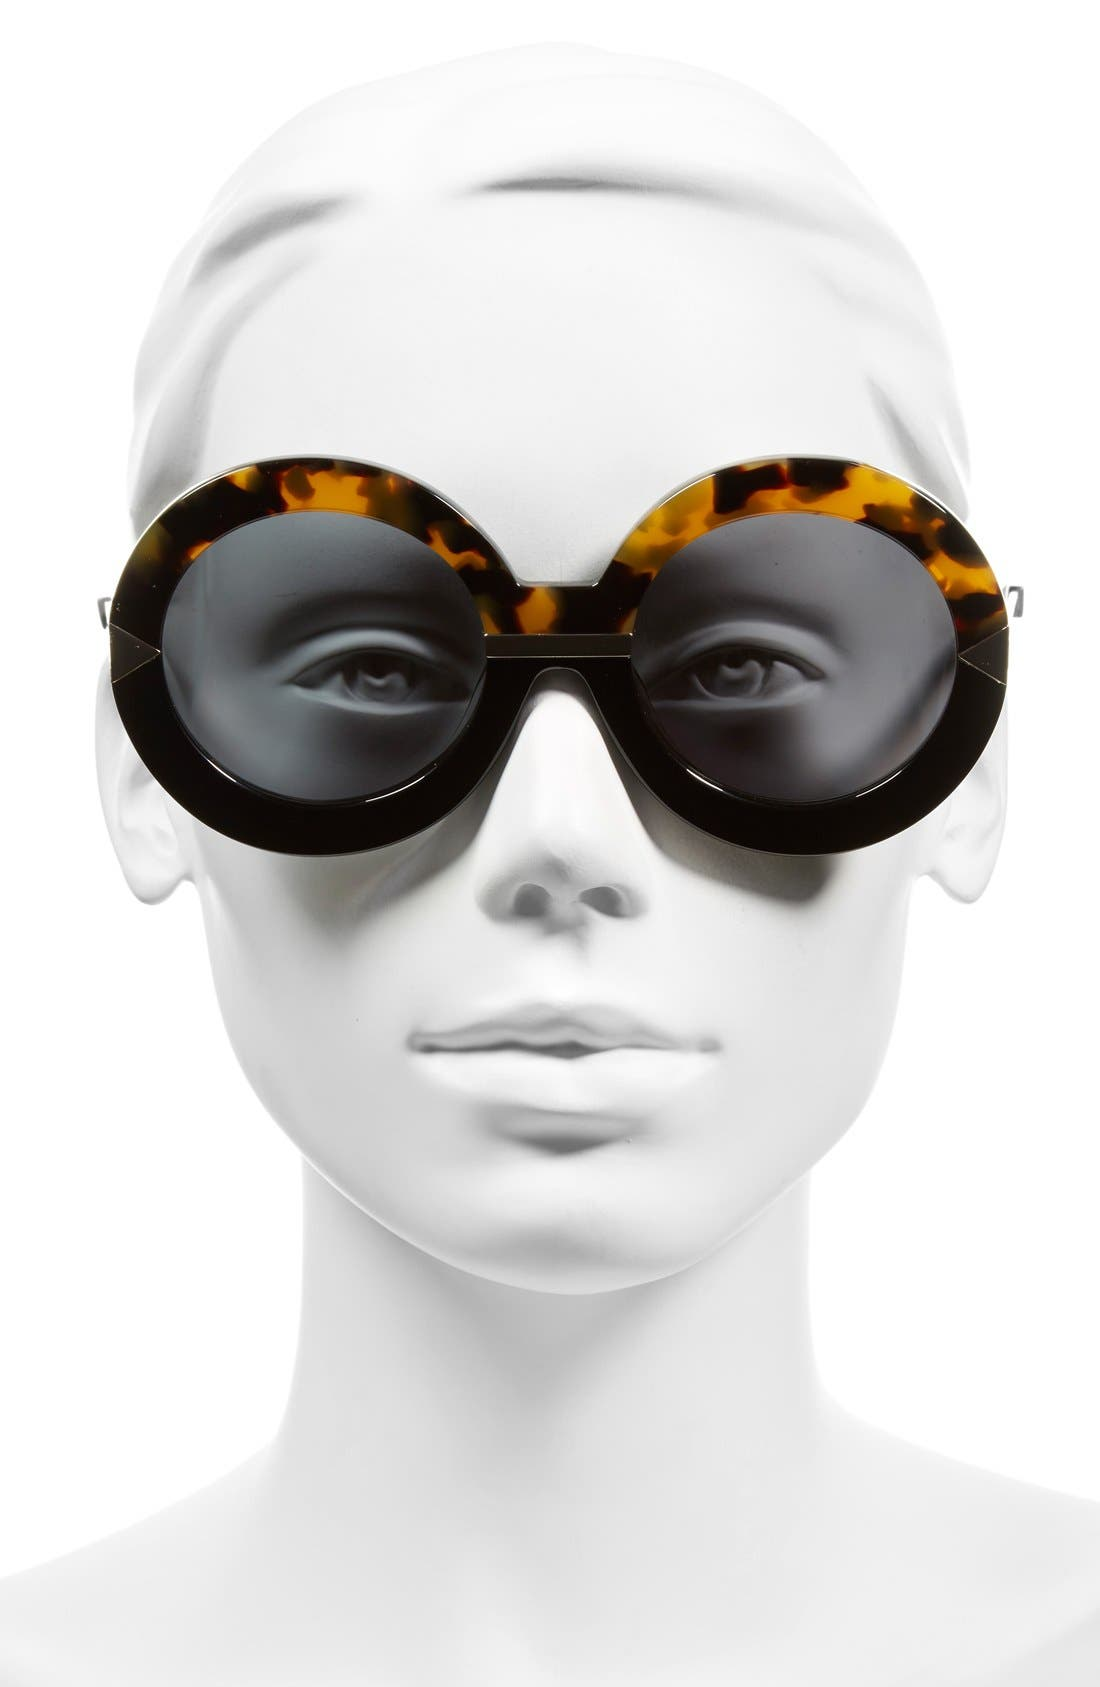 'Hollywood Pool - Arrowed by Karen' 53mm Sunglasses,                             Alternate thumbnail 2, color,                             Crazy Tort/ Black/ Gold